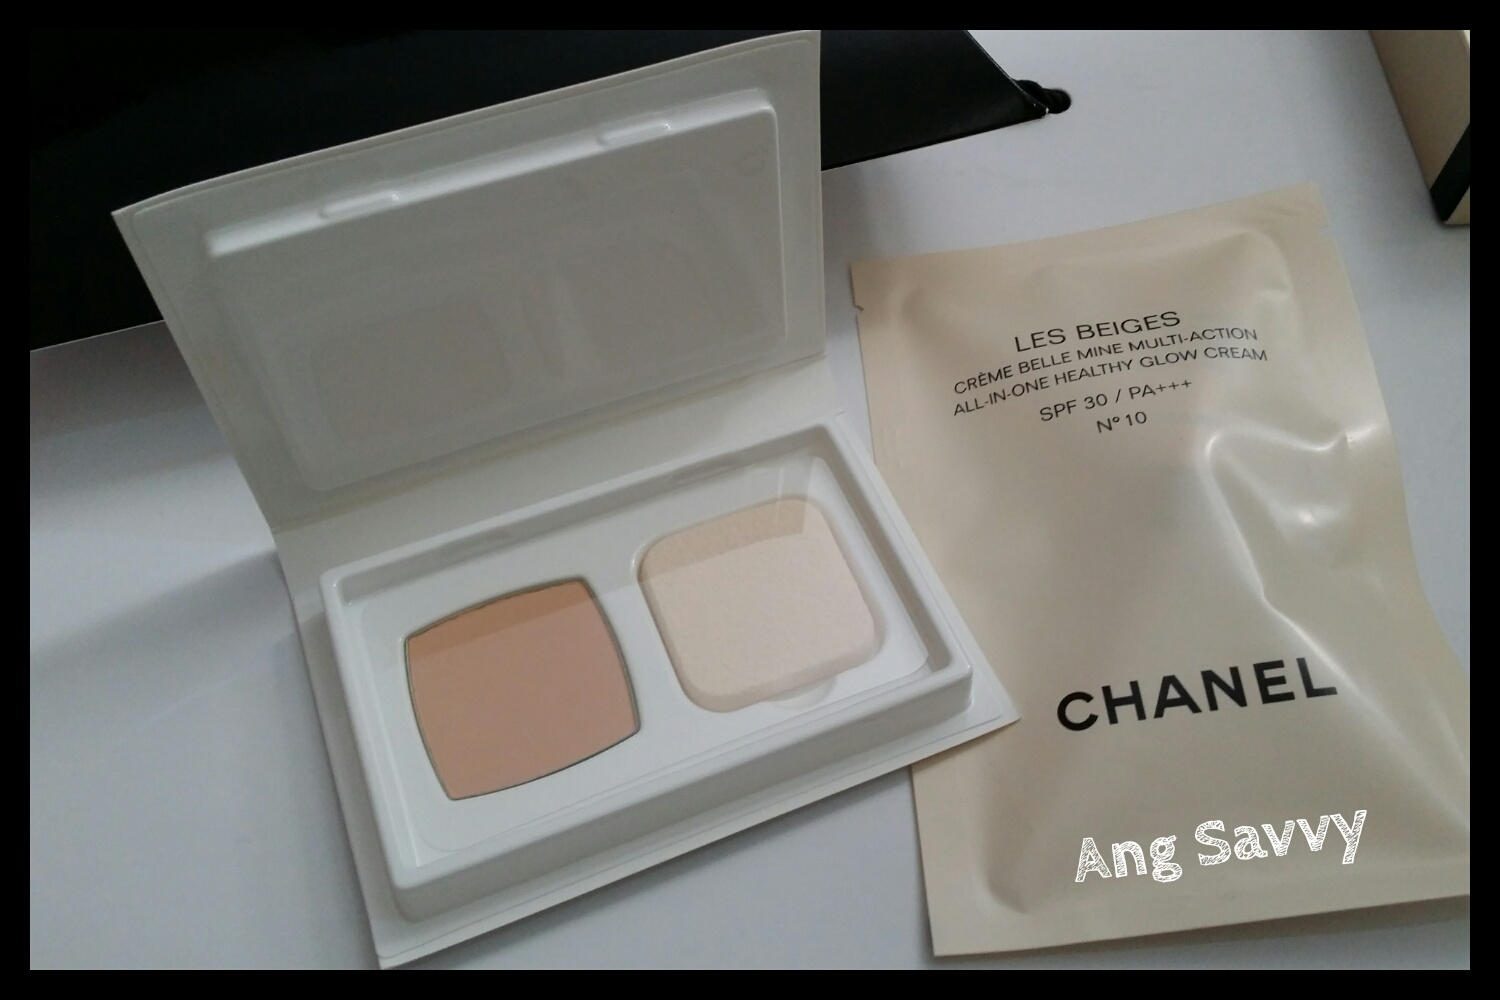 Chanel Samples Giveaway